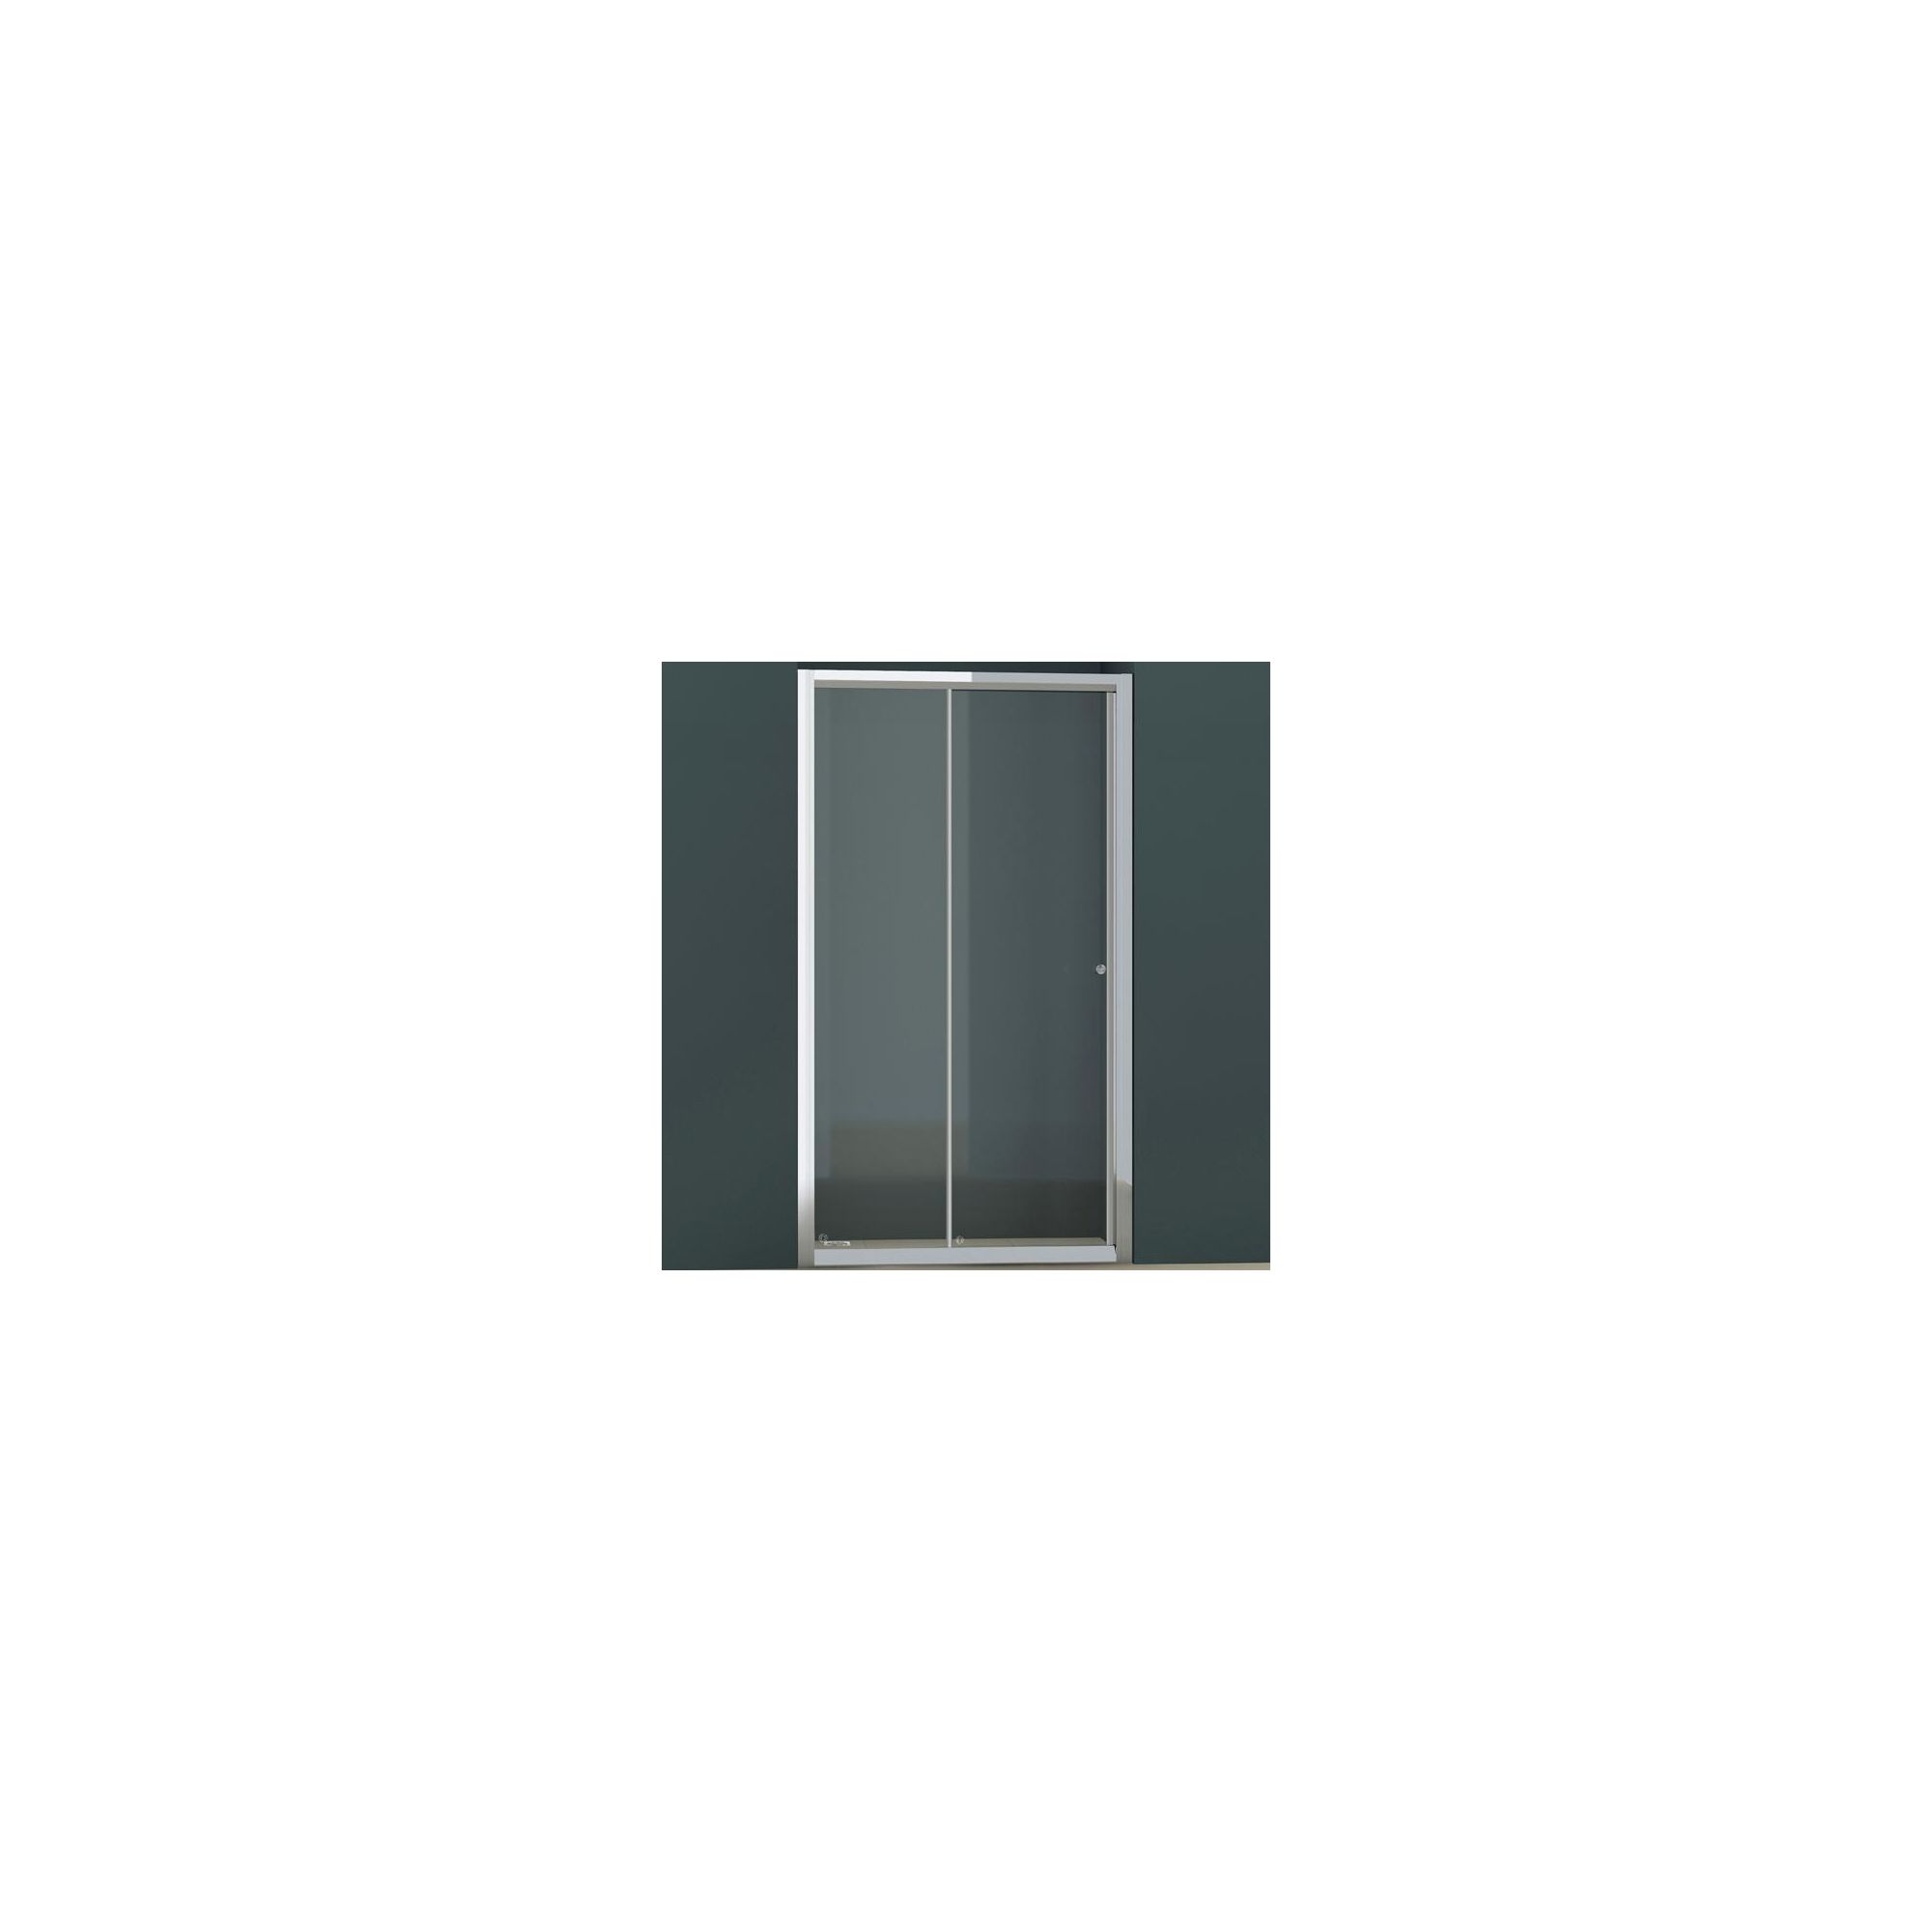 Vessini E Series Sliding Shower Door, 1100mm Wide, 6mm Glass at Tesco Direct